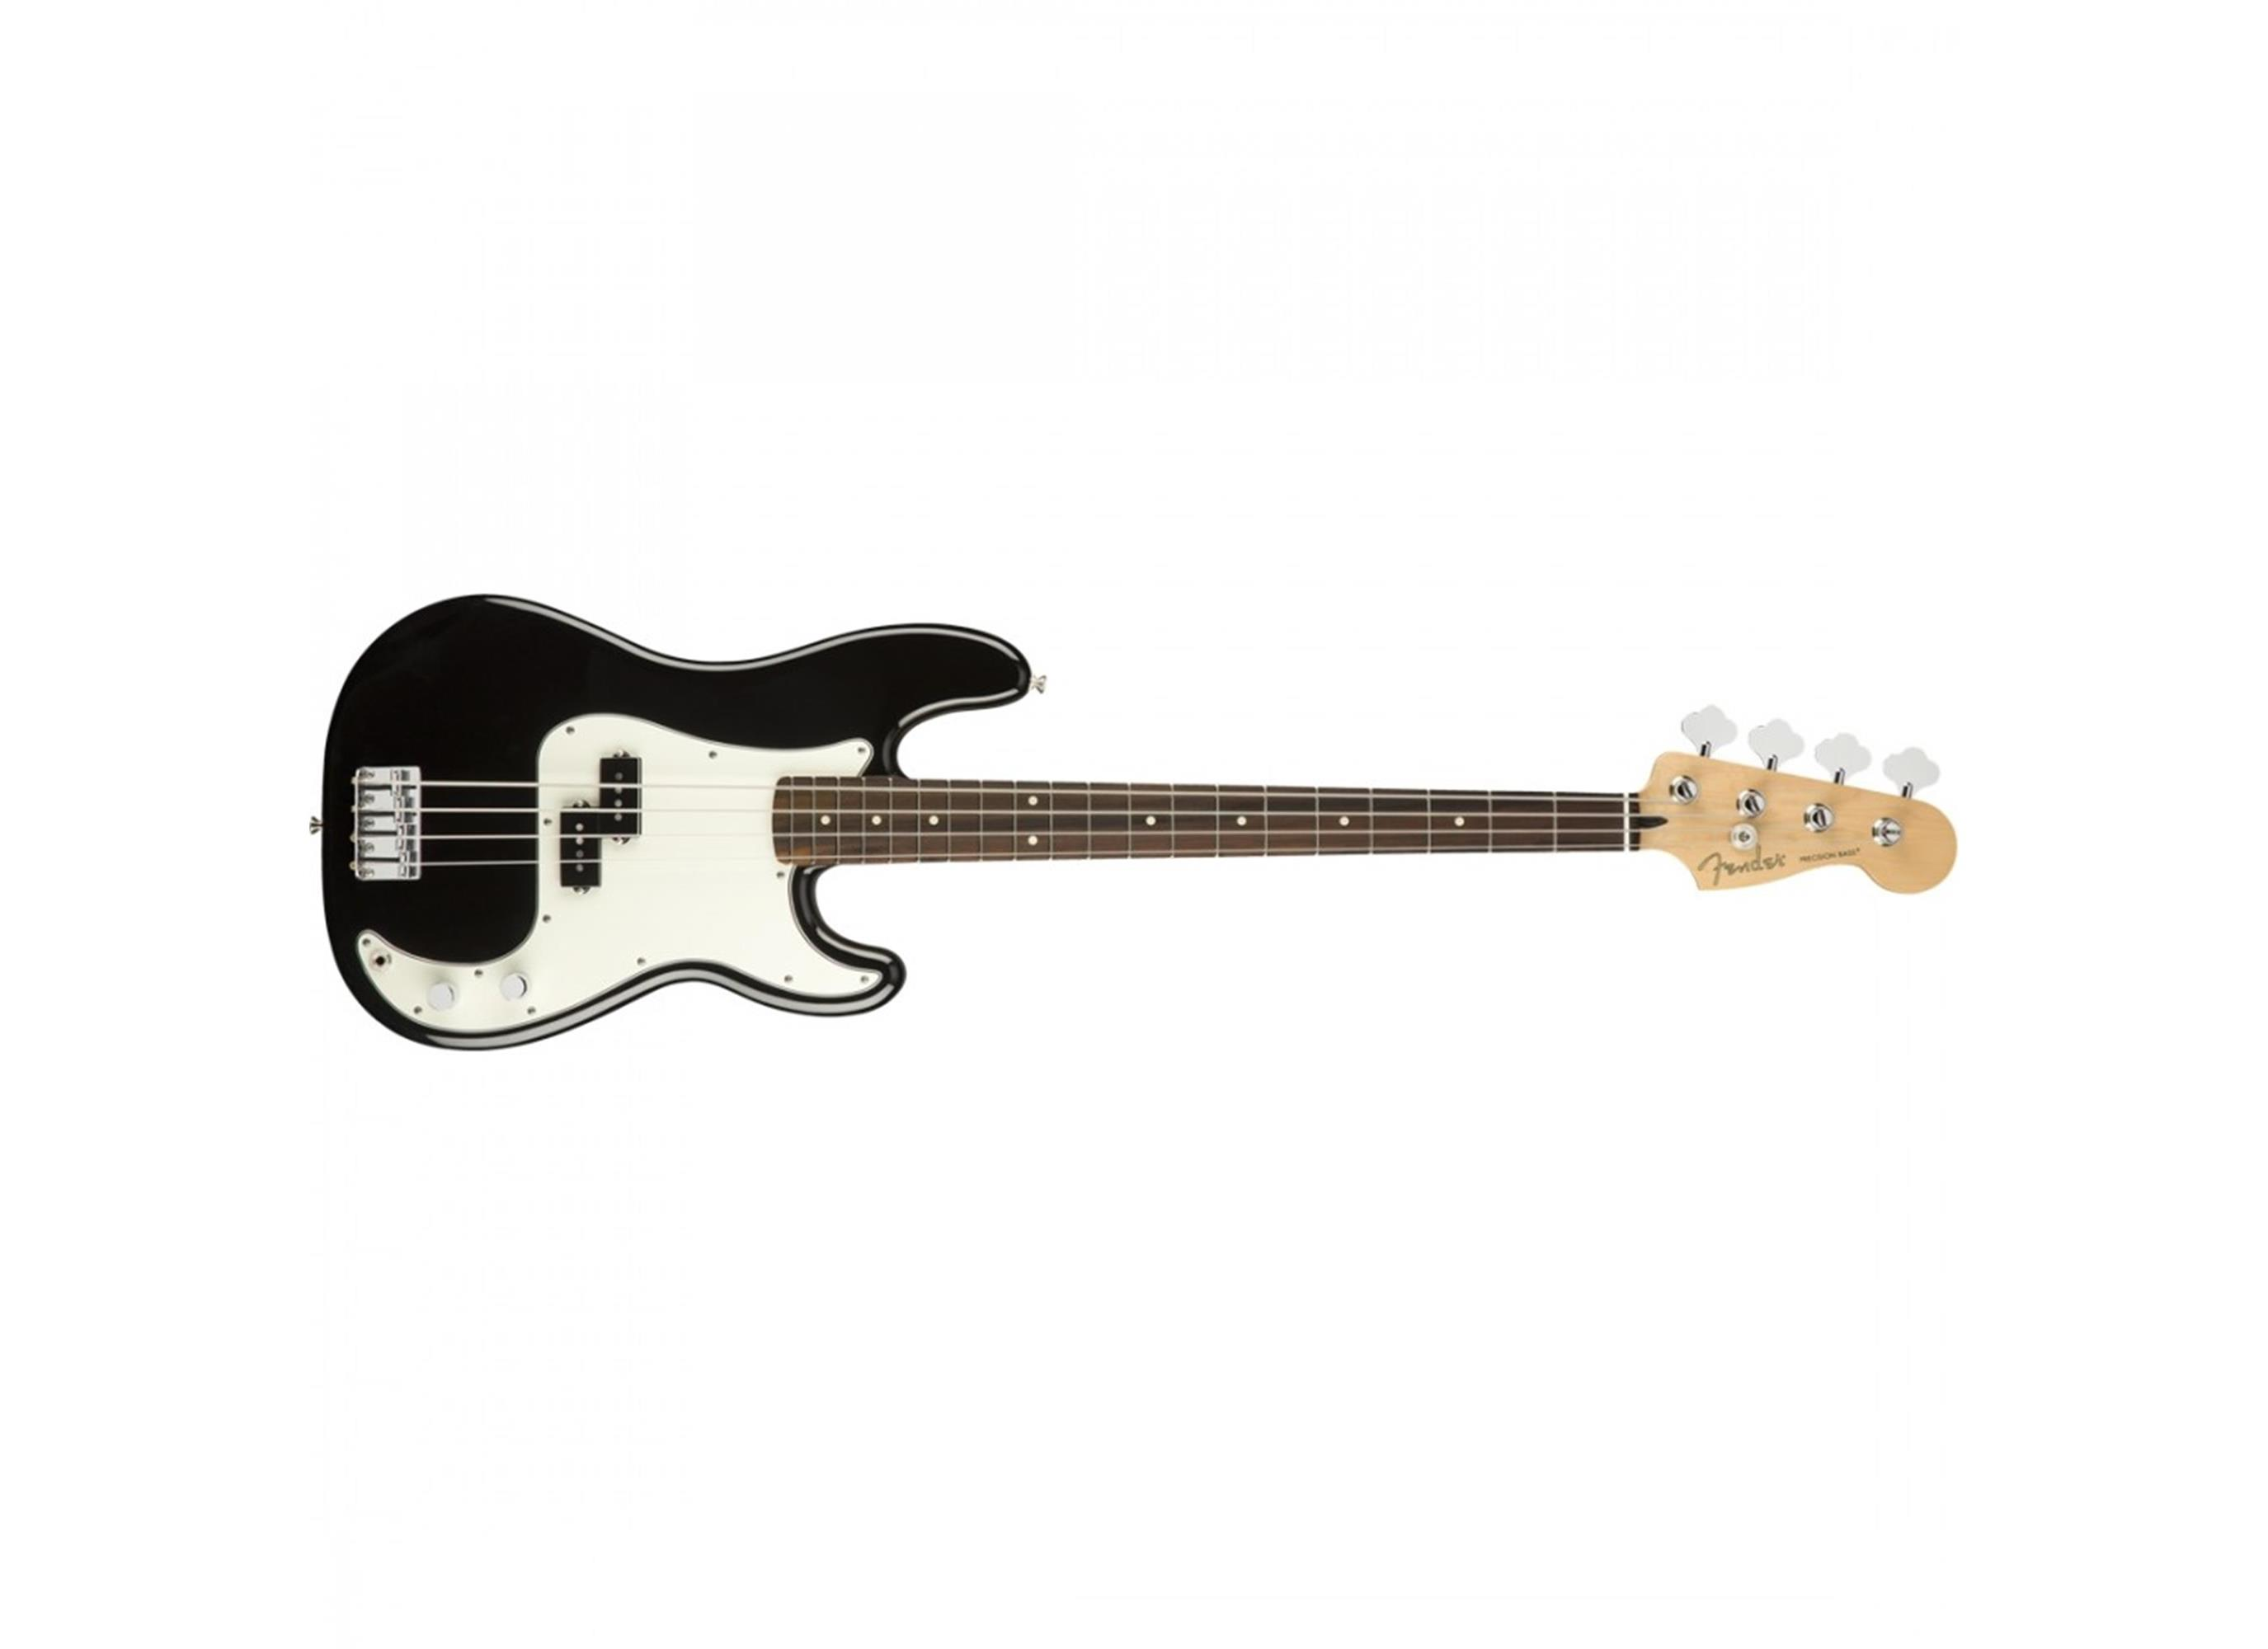 FENDER Player Precision Bass PF Black 0149803506 - Bassi Bassi - Elettrici 4 Corde